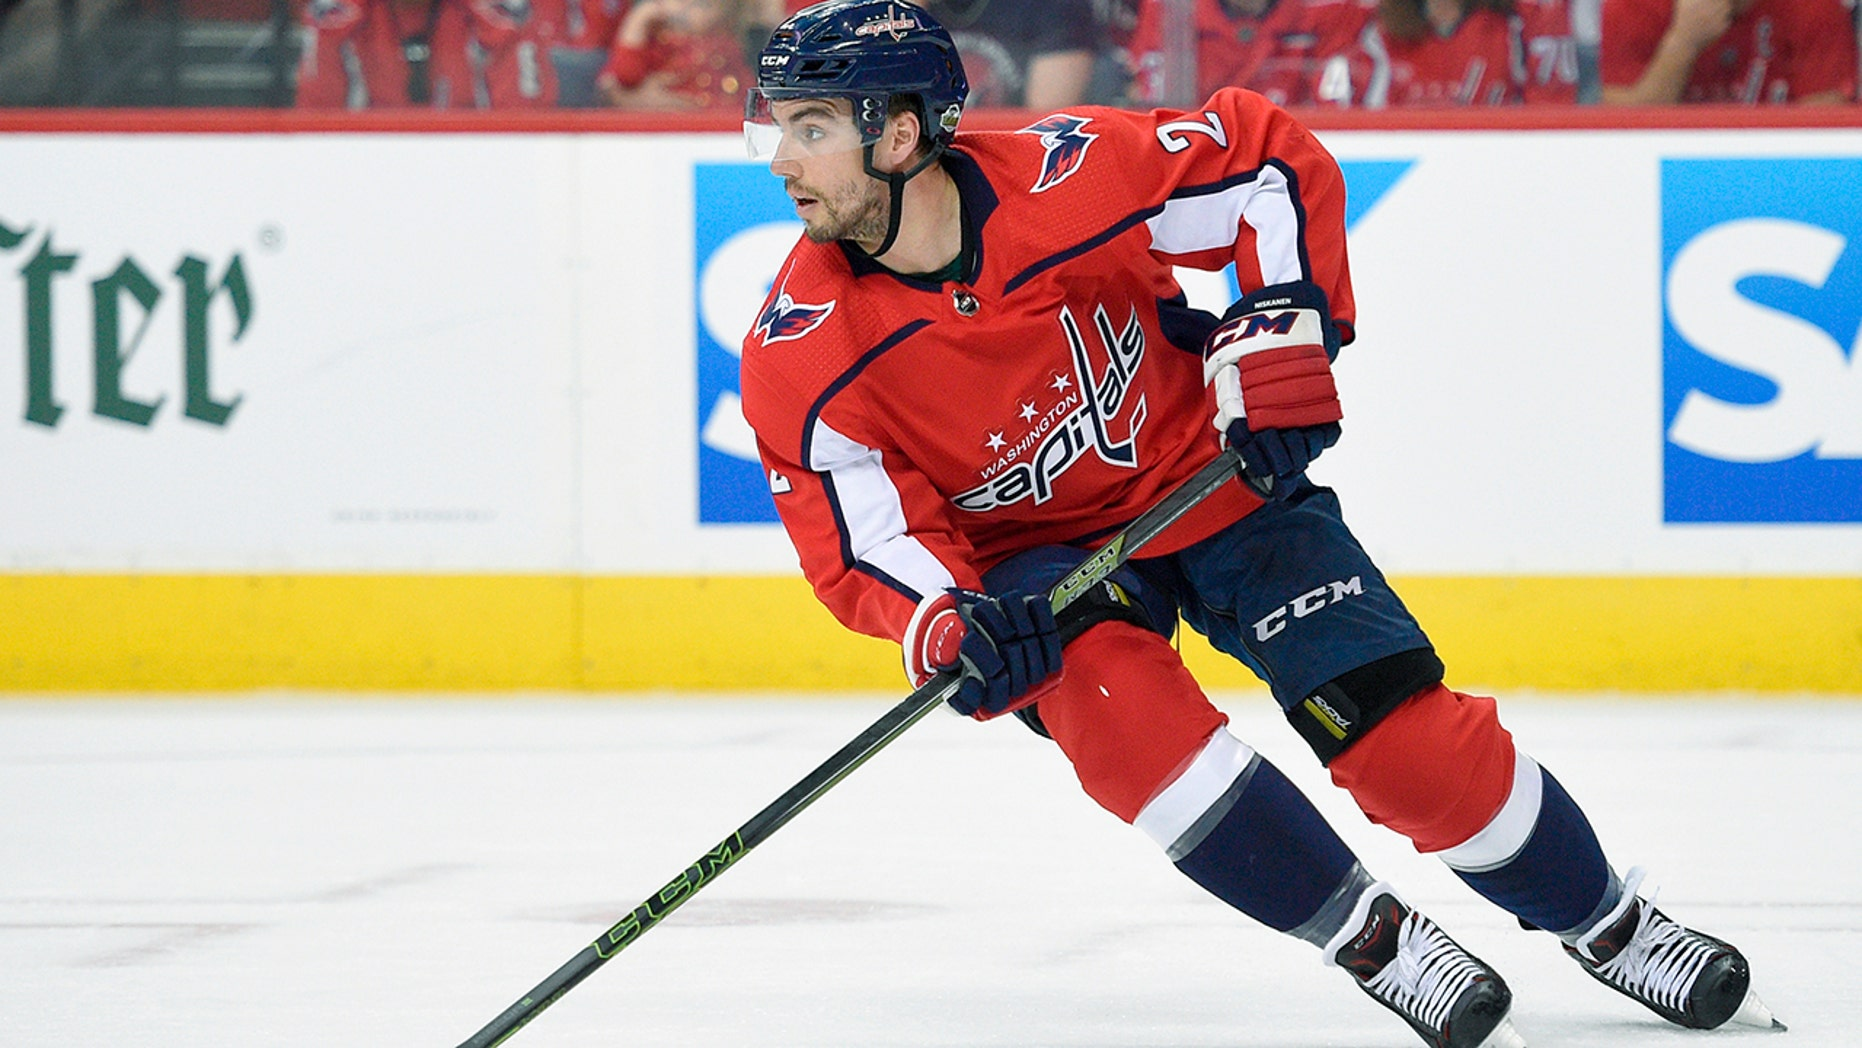 Westlake Legal Group NHL-Matt-Niskanen Follow the money: Salary cap could spawn NHL trade frenzy fox-news/sports/nhl/winnipeg-jets fox-news/sports/nhl/washington-capitals fox-news/sports/nhl/pittsburgh-penguins fox-news/sports/nhl/new-york-rangers fox-news/sports/nhl/new-jersey-devils fox-news/sports/nhl/nashville-predators fox-news/sports/nhl fnc/sports fnc Associated Press article 19831ca0-a57c-560c-b457-45e21e92d0a4